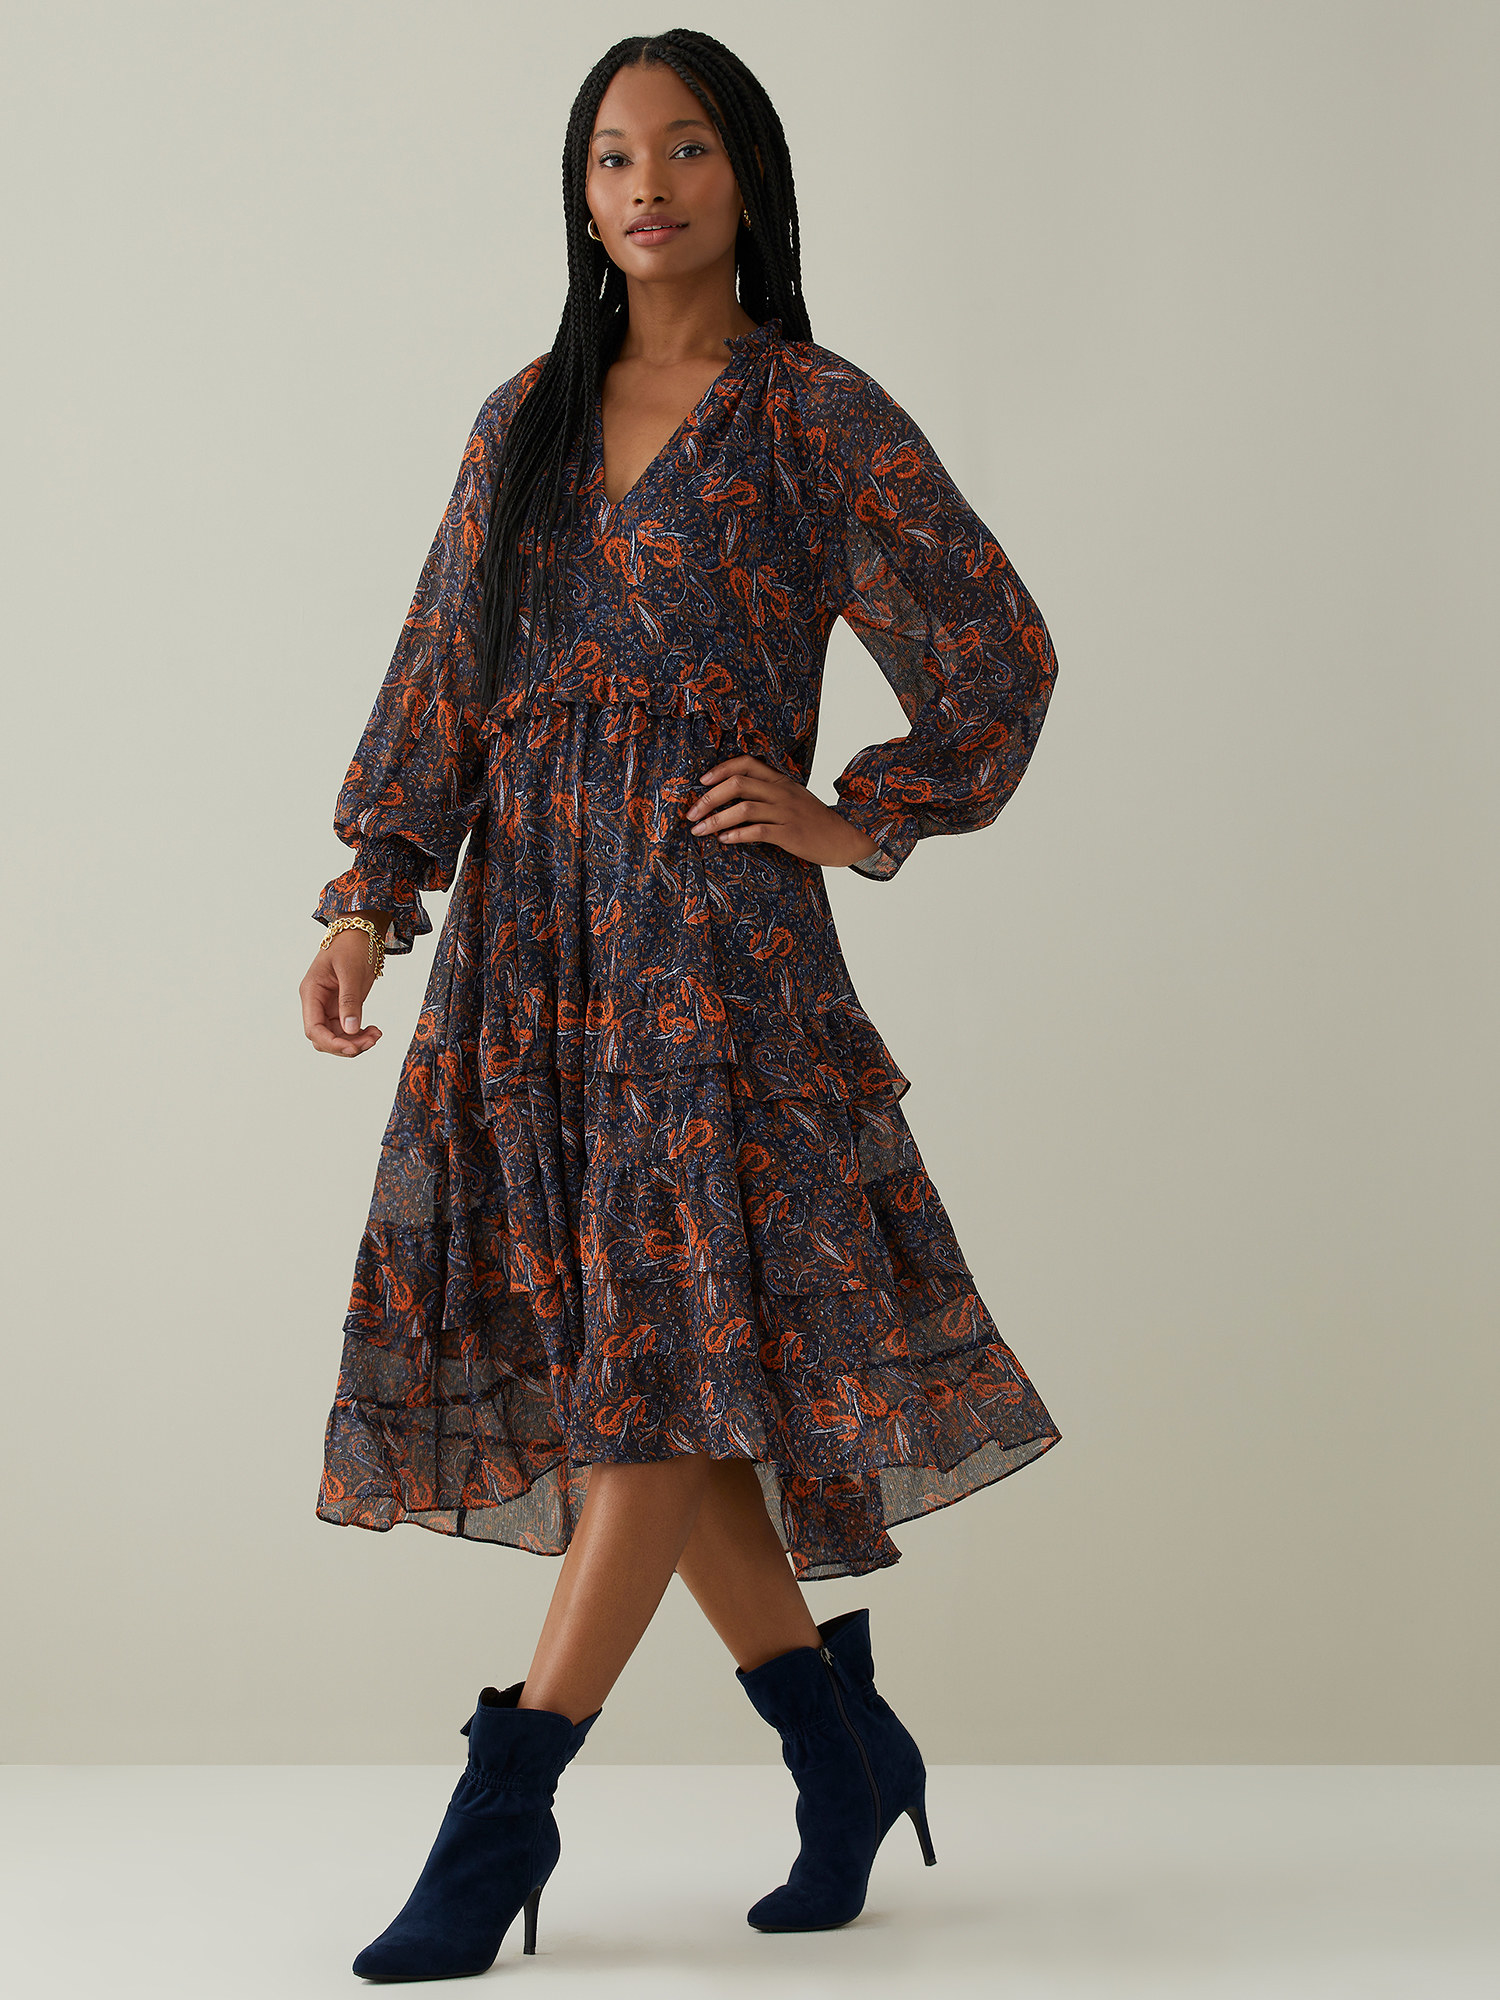 Model wearing the blue and orange floral dress